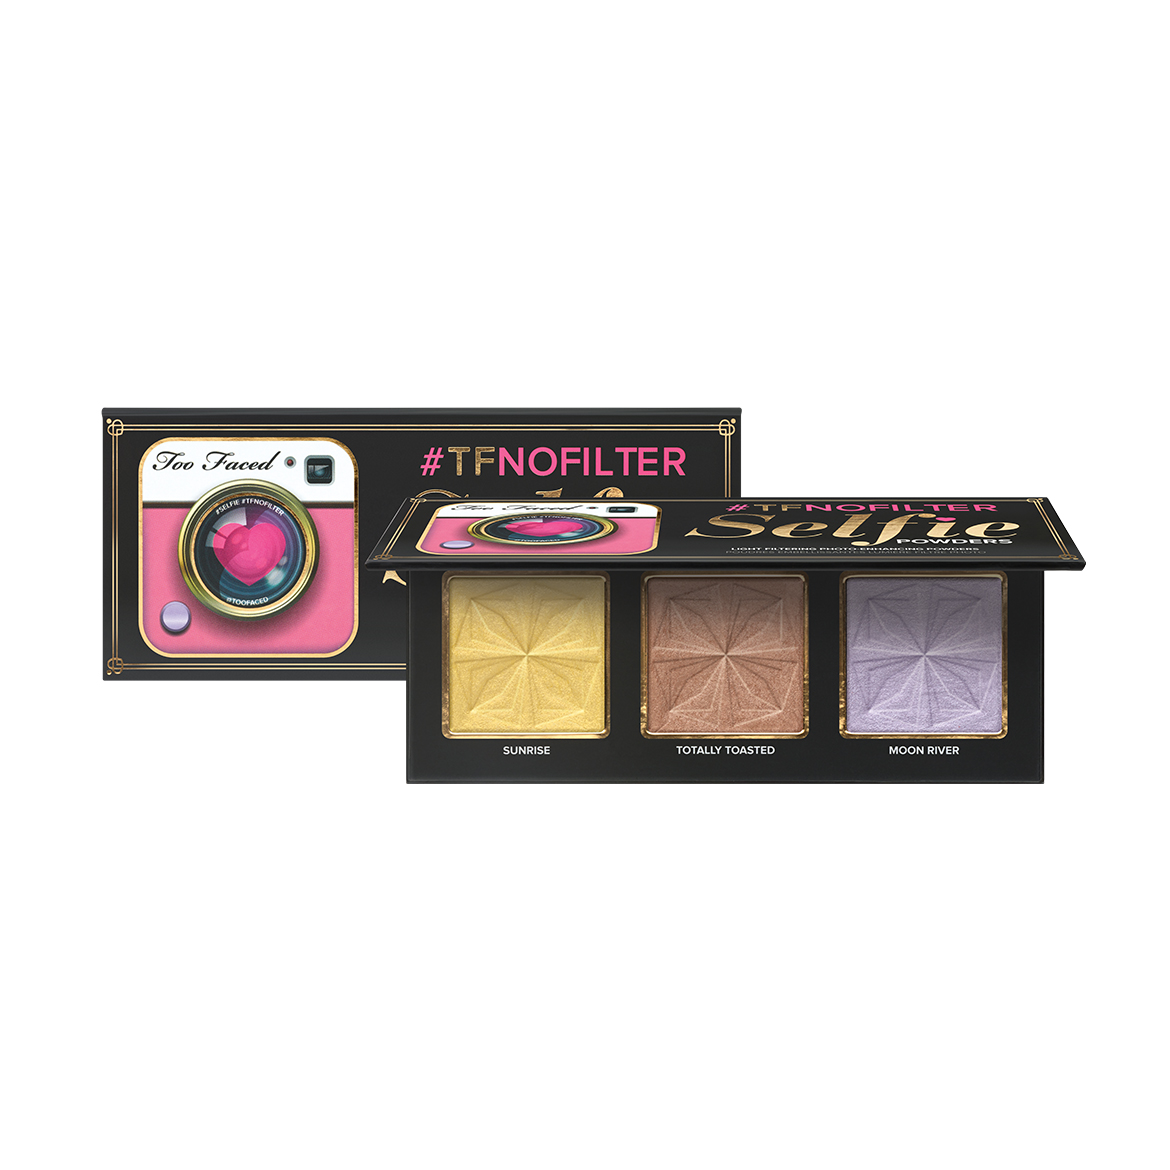 Too Faced Selfie Light Filtering Photo-Enhancing Powders